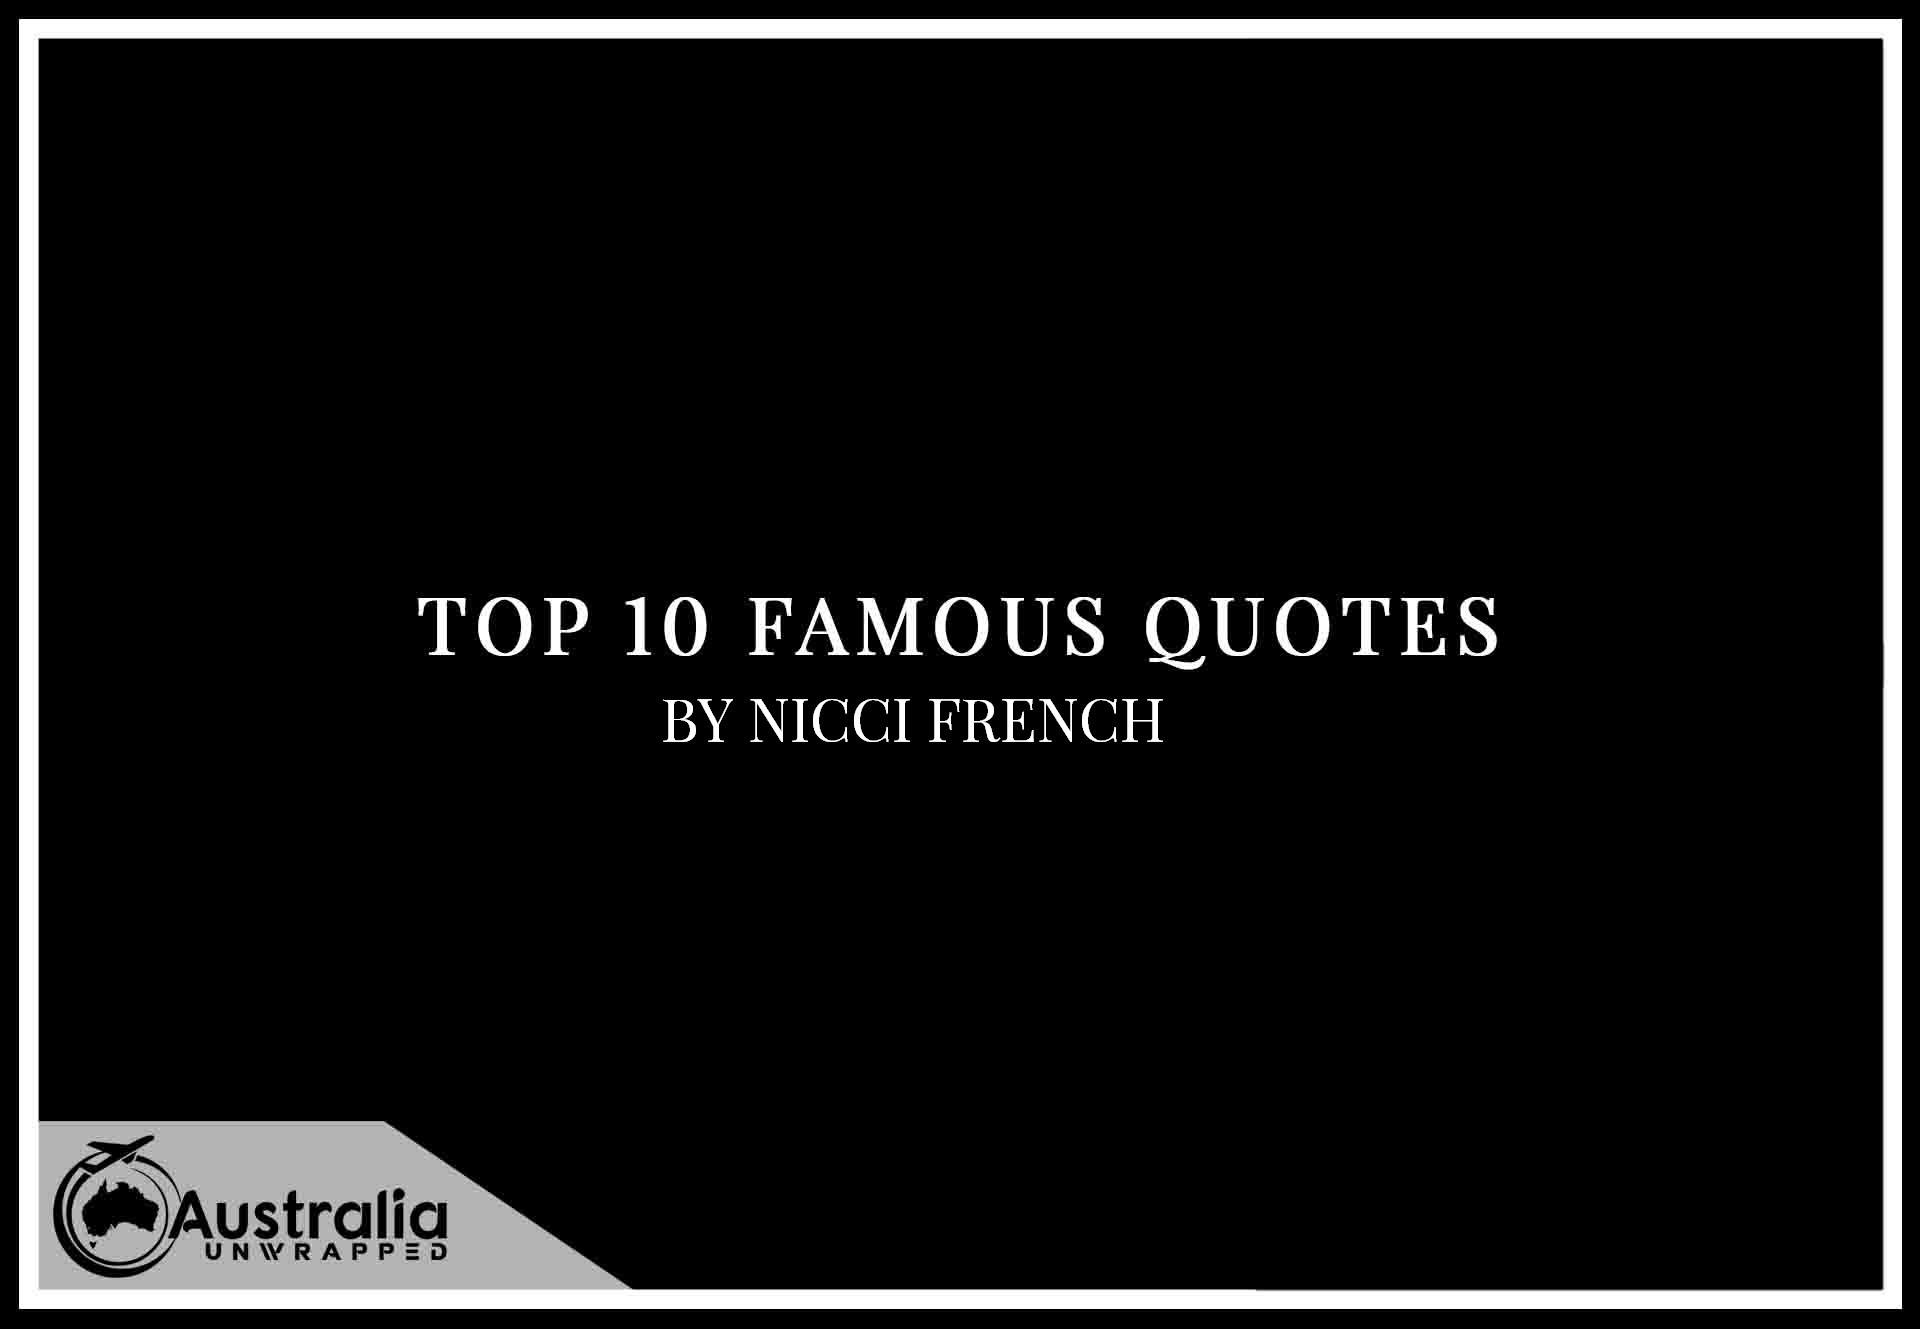 Top 10 Famous Quotes by Author Nicci French